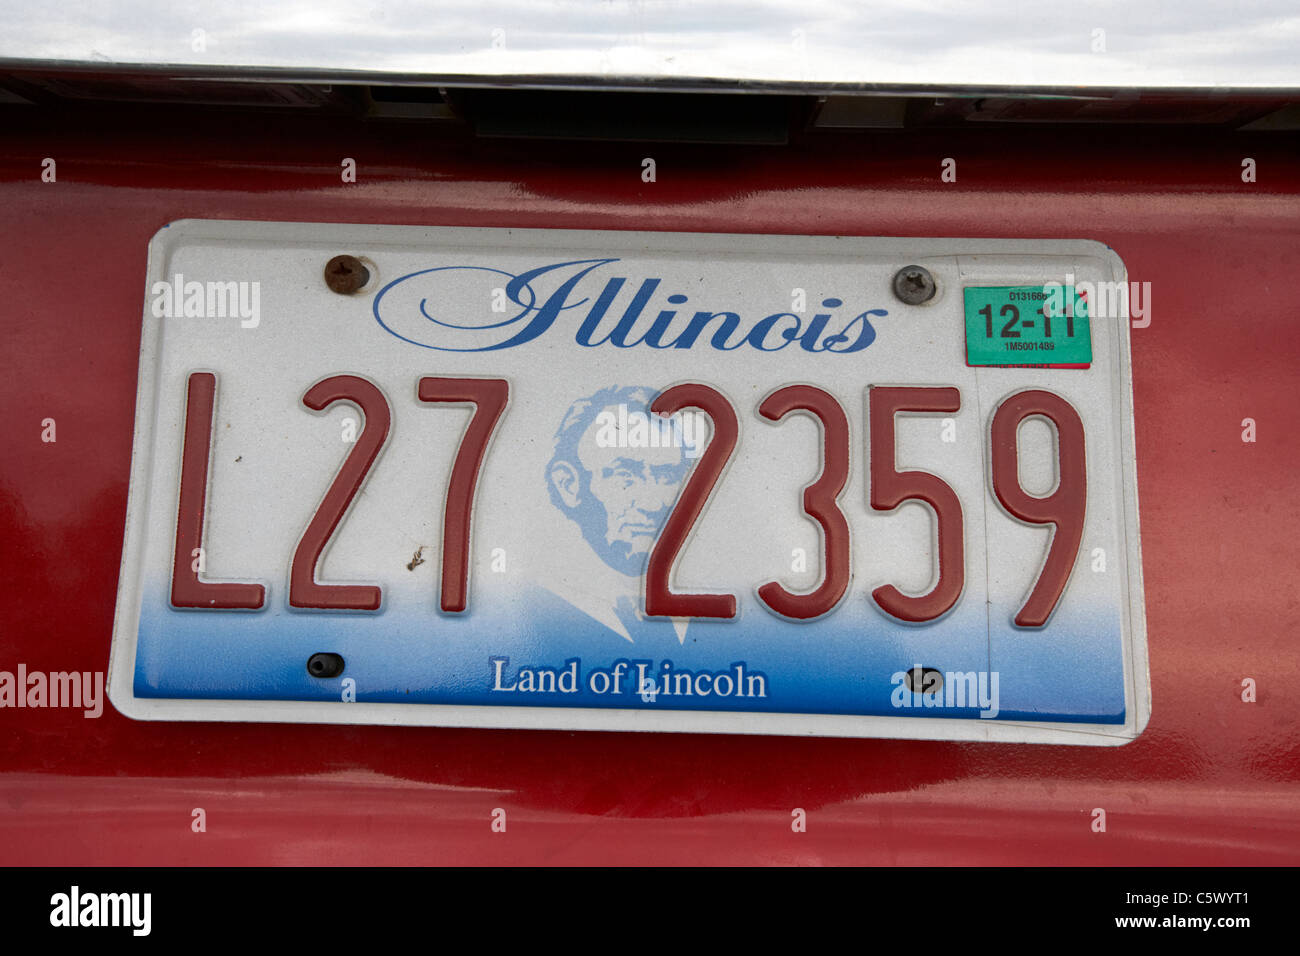 illinois land of lincoln vehicle license plate state usa - Stock Image